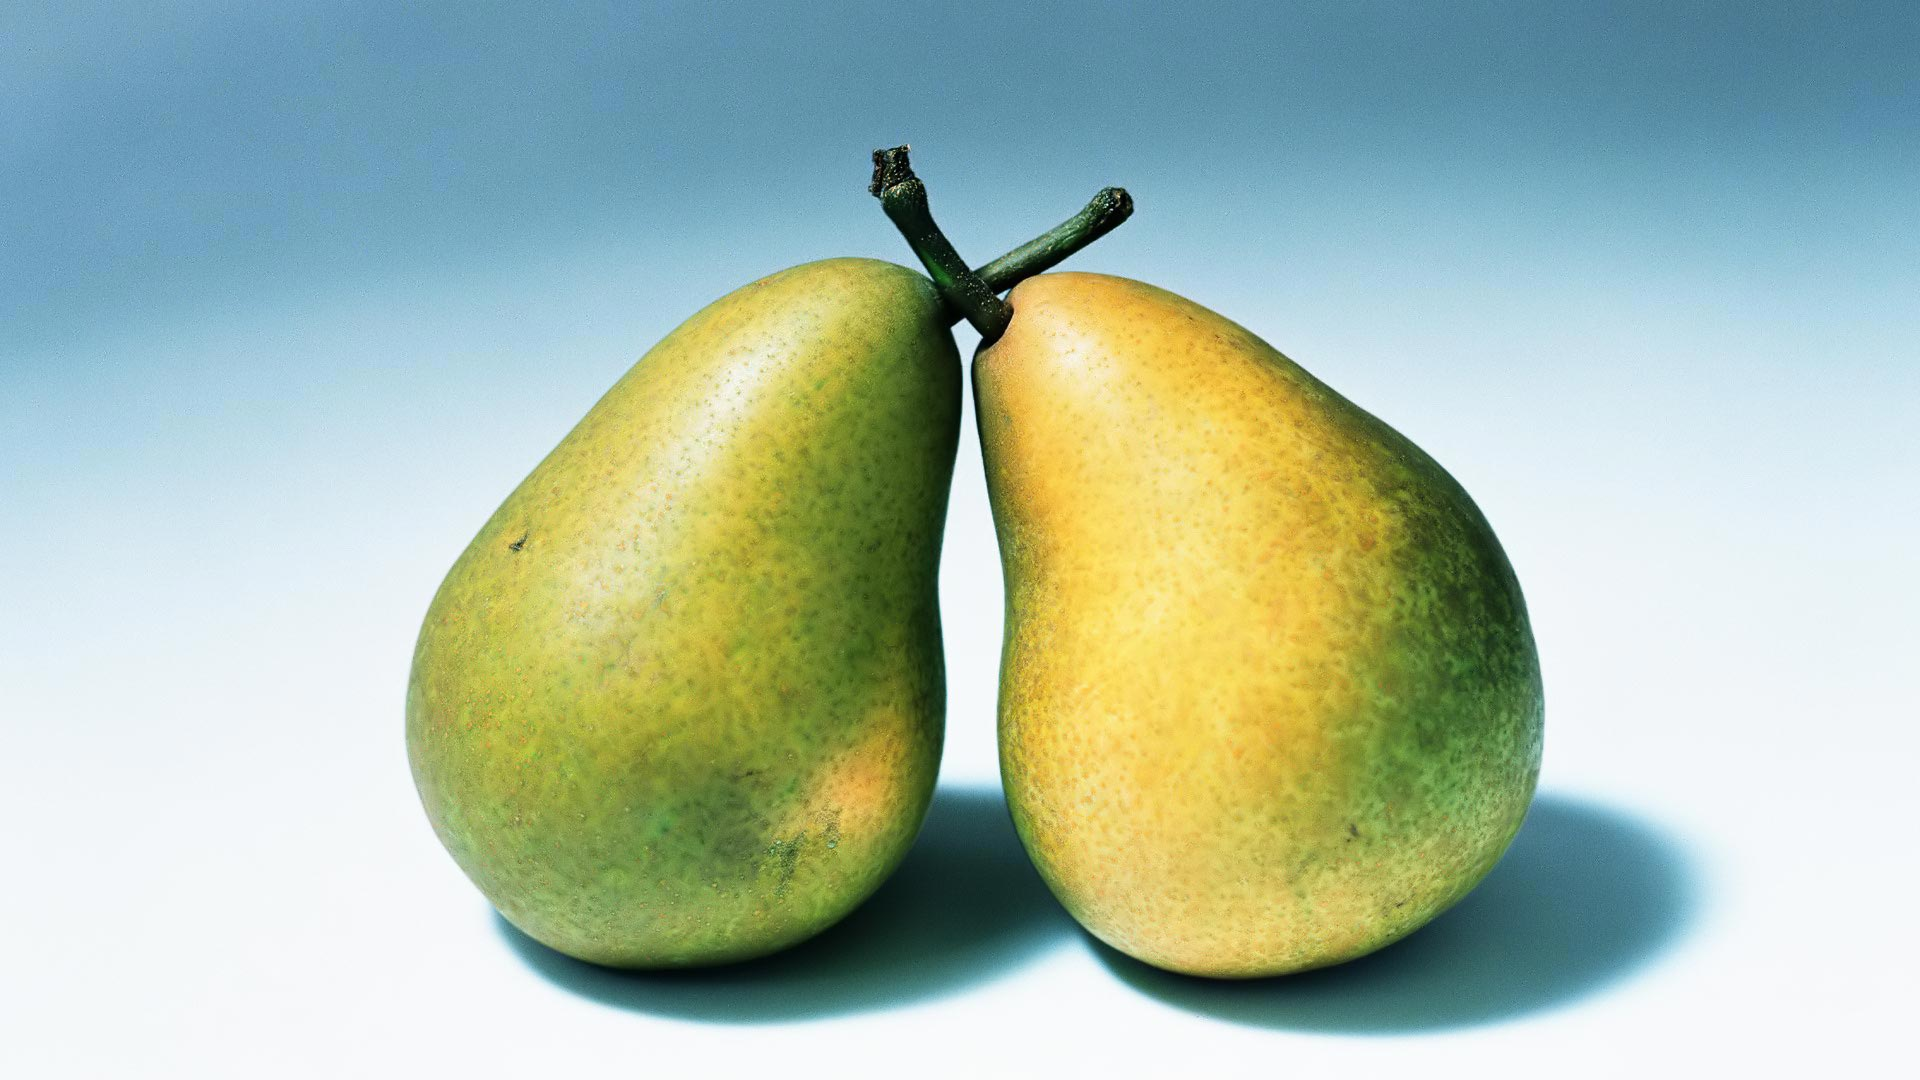 Pear widescreen for desktop